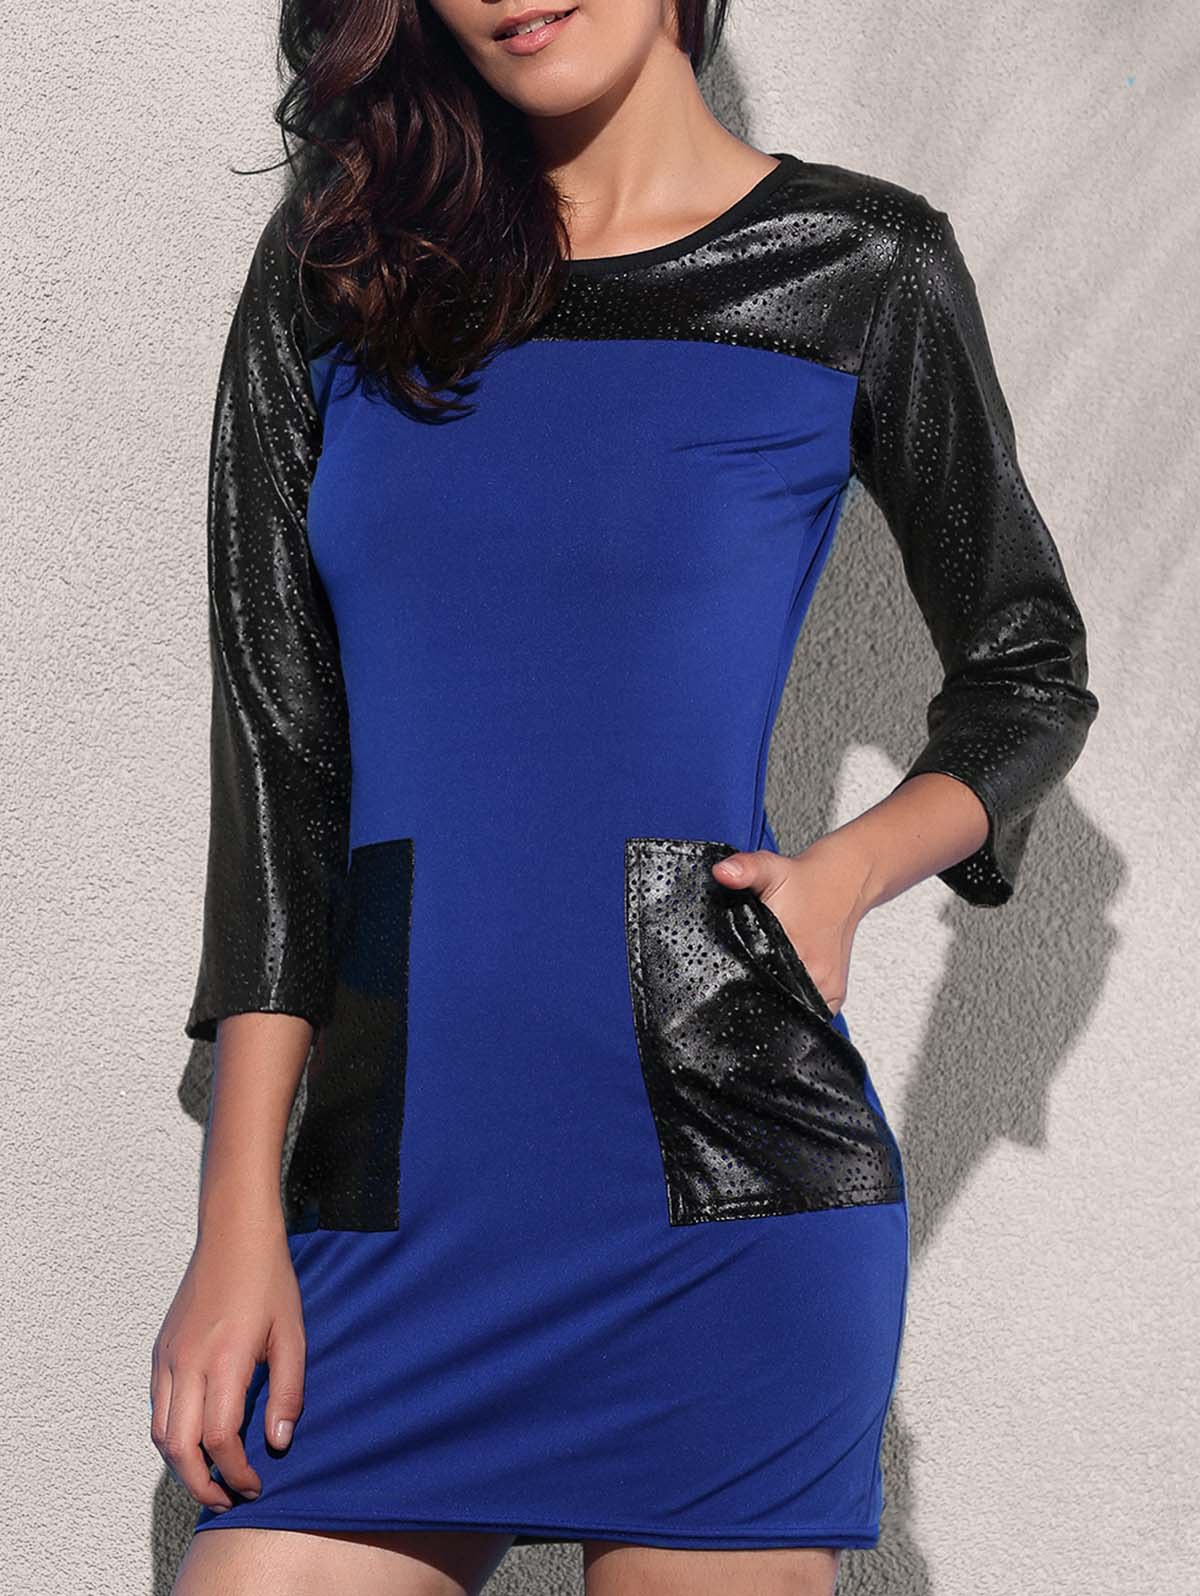 Trendy 3/4 Sleeve Round Collar Pocket Design Leather Spliced Women's Dress - BLUE L